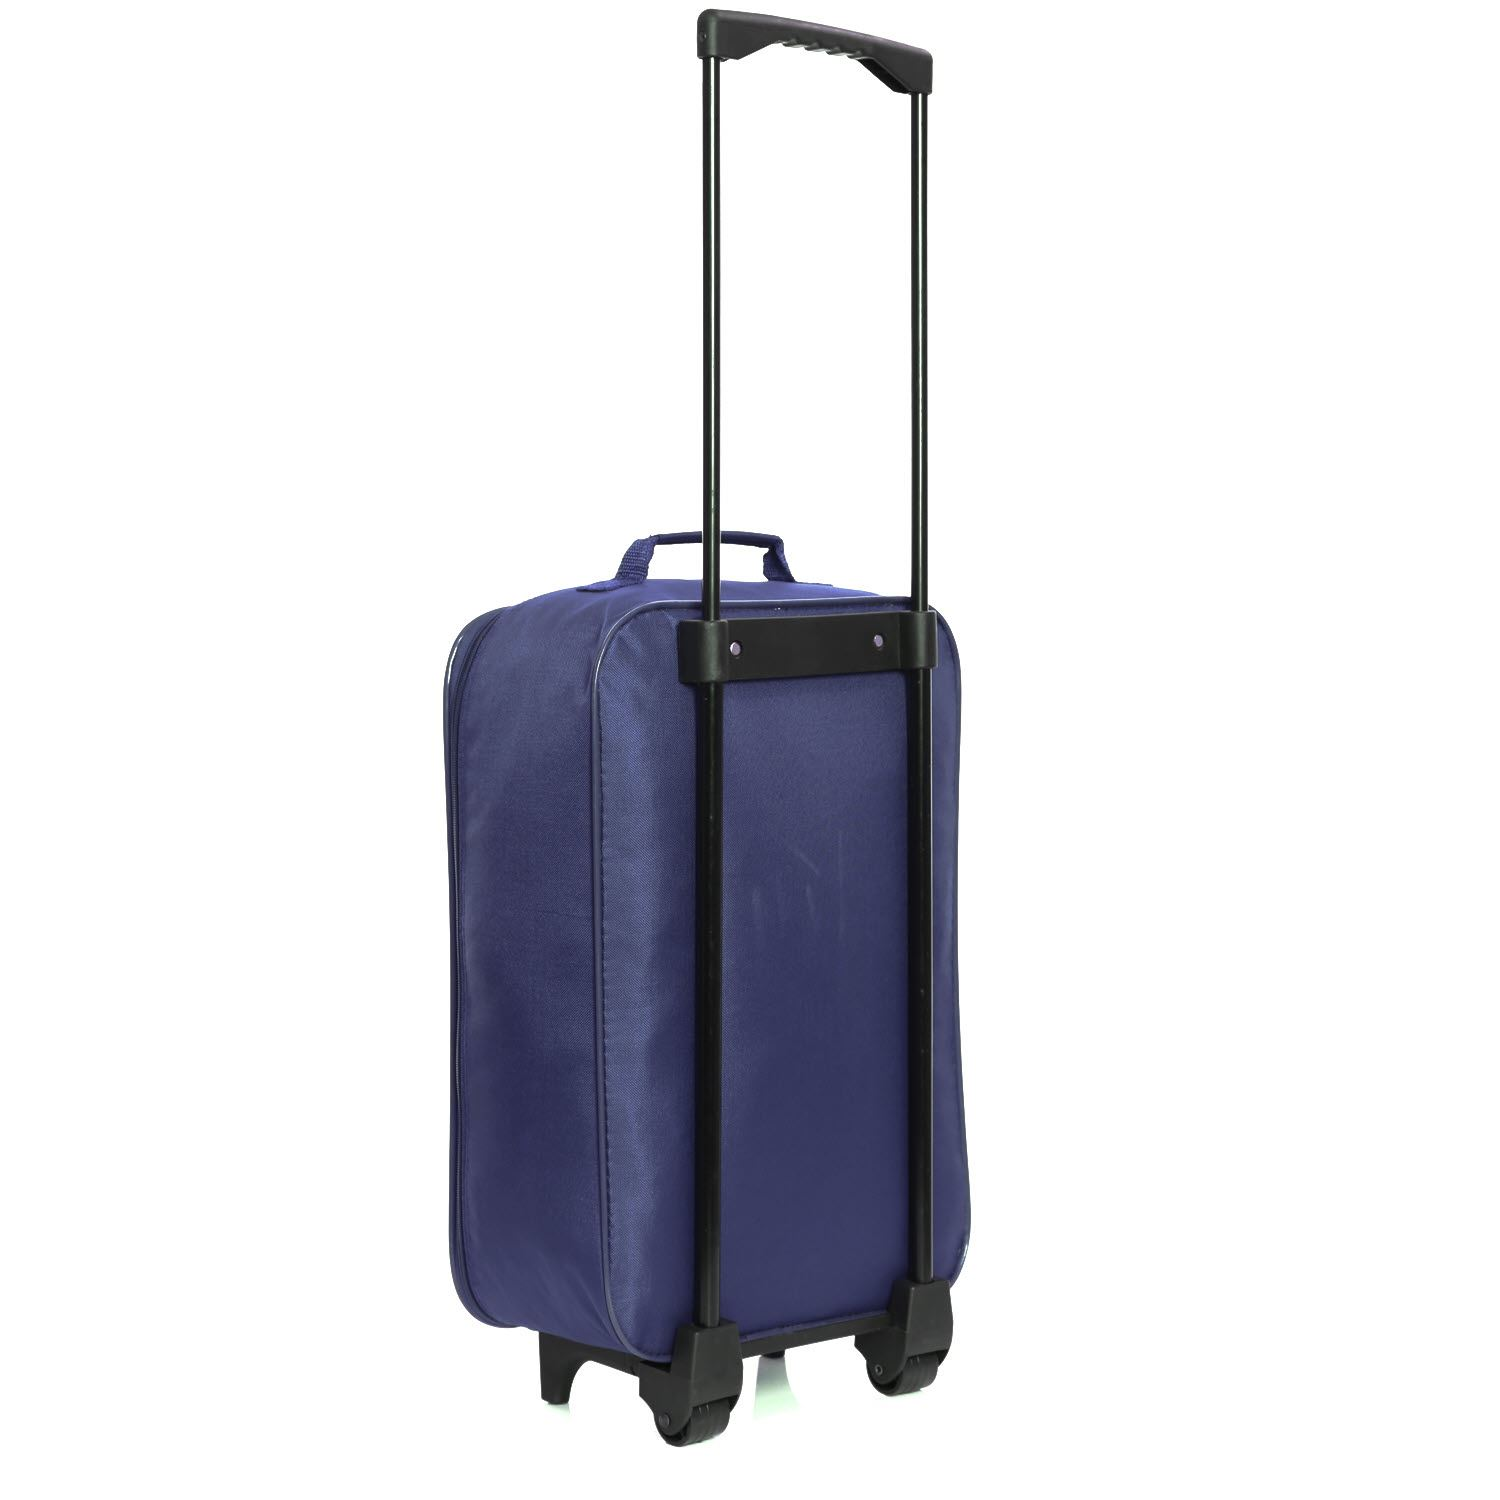 easyjet flybe ryanair cabin carry on hand luggage trolley. Black Bedroom Furniture Sets. Home Design Ideas